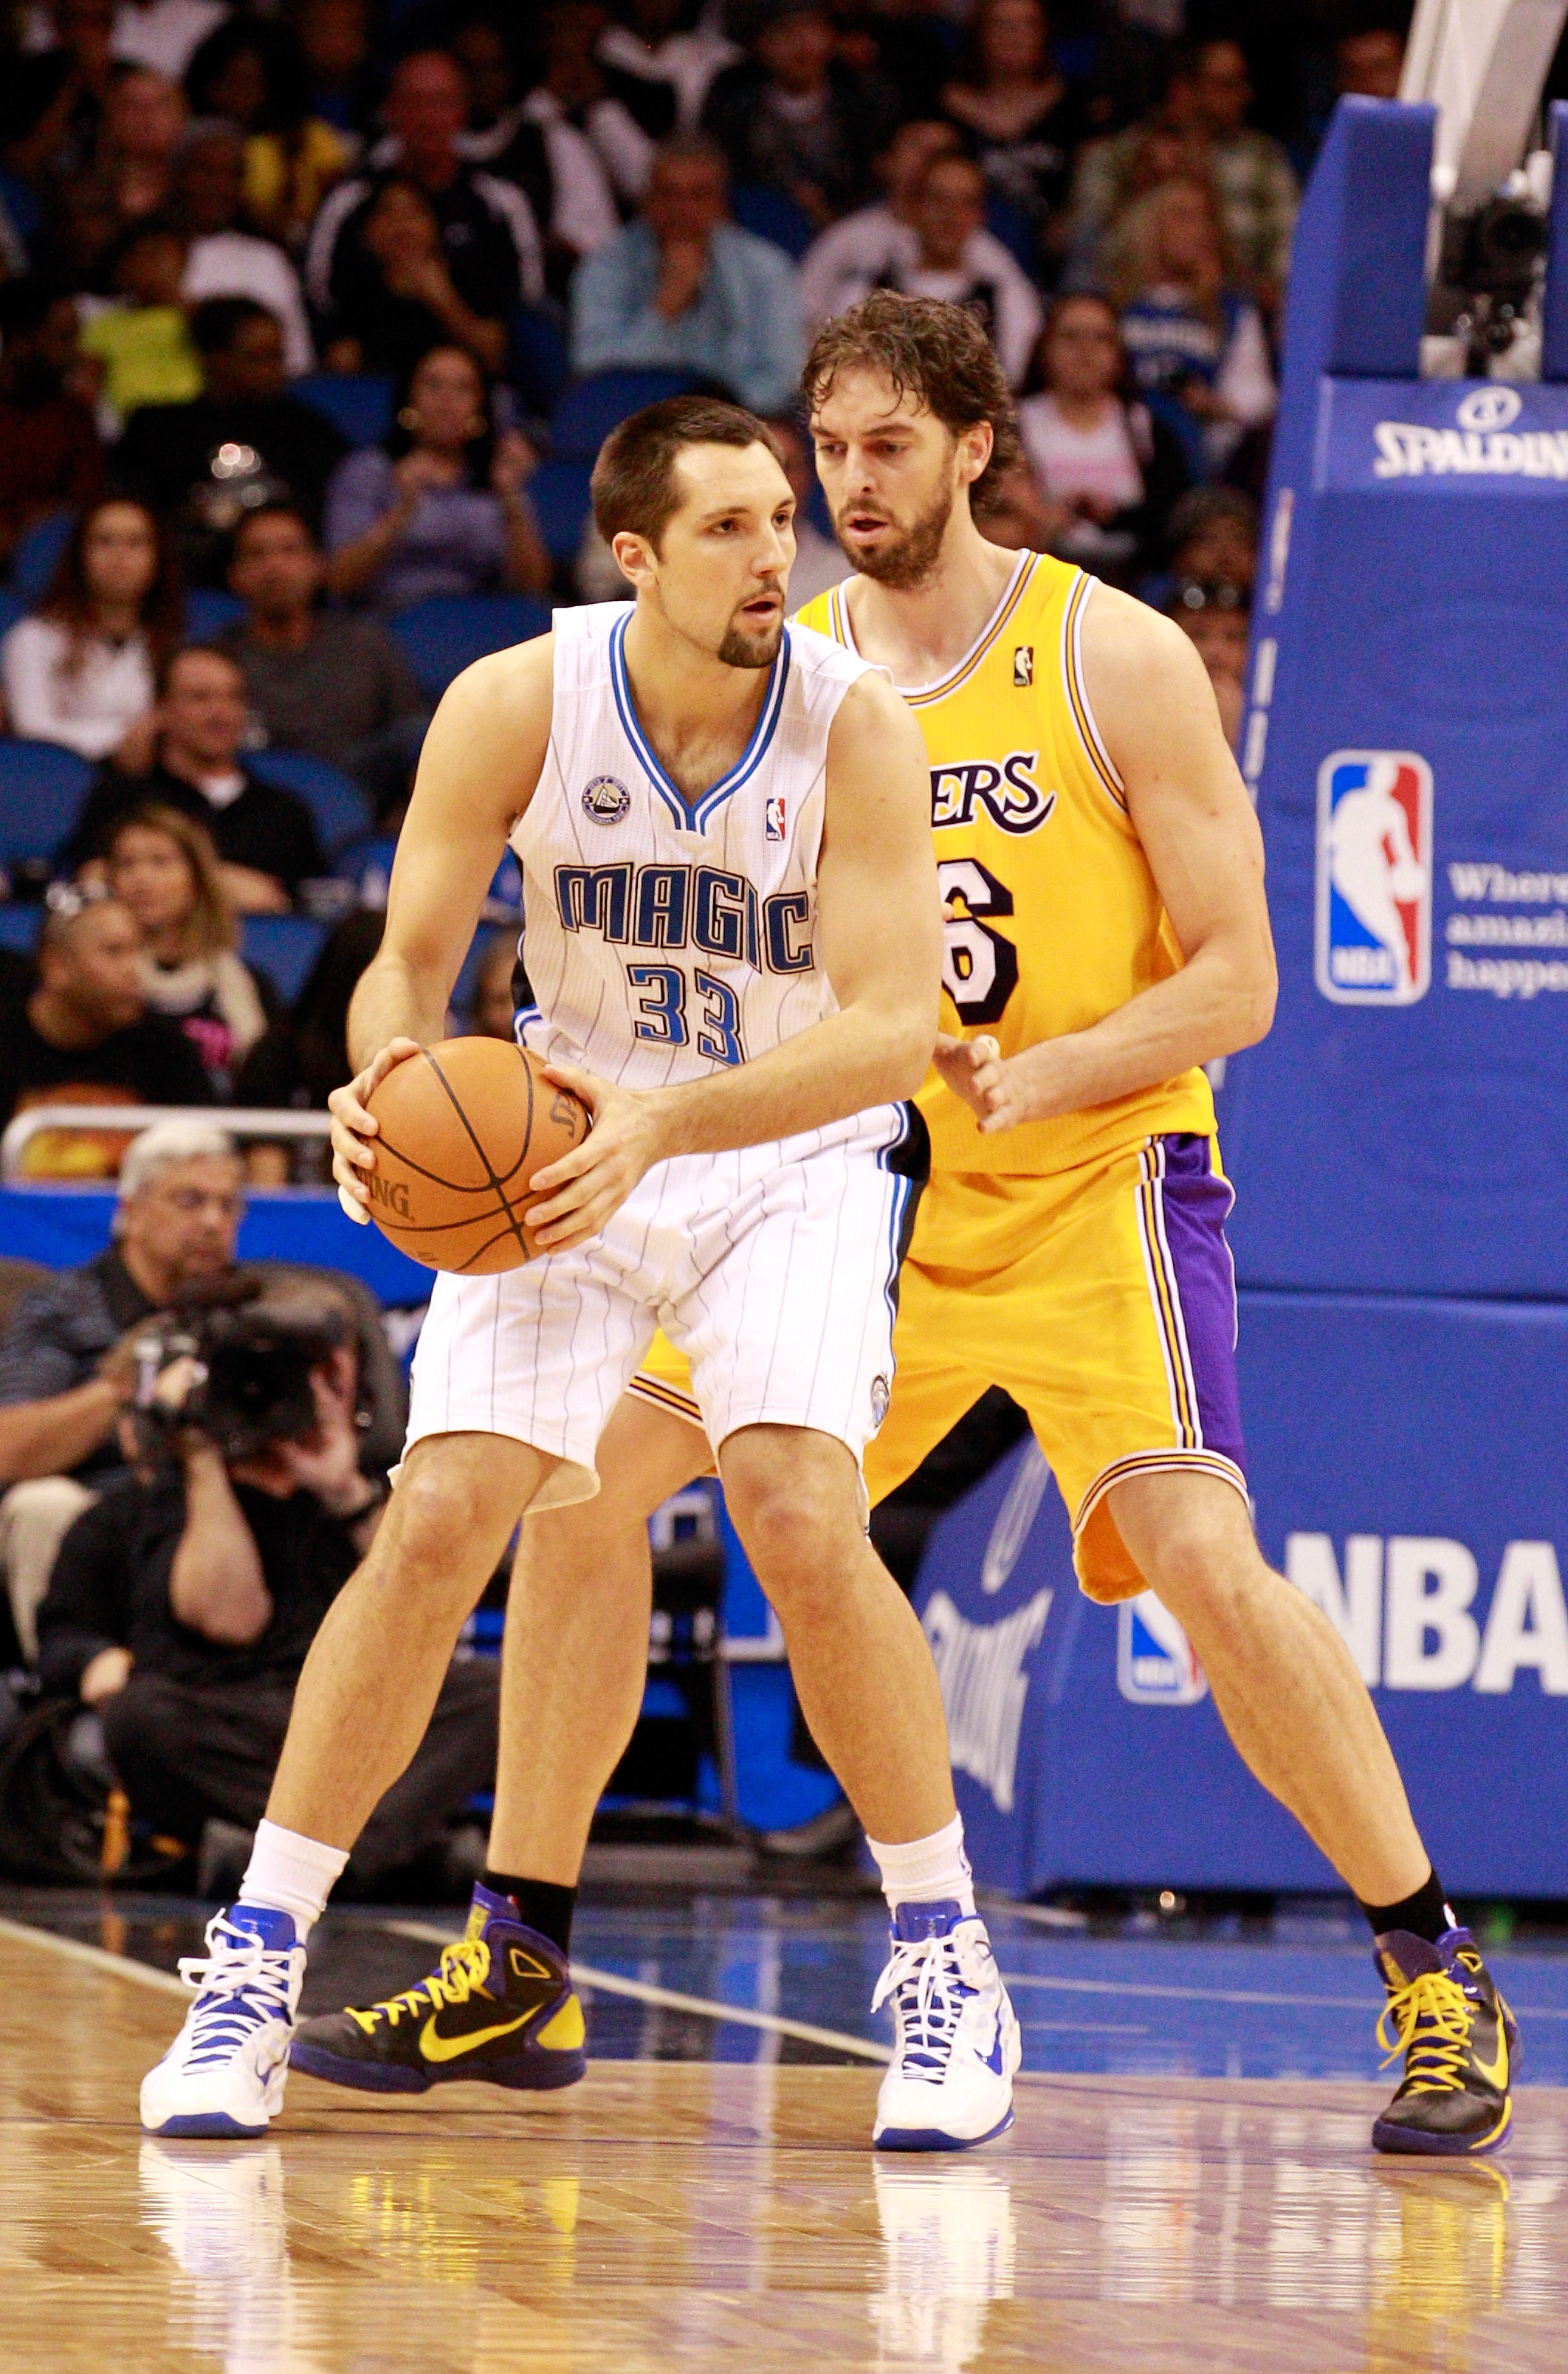 ORLANDO, FL - FEBRUARY 13:  Ryan Anderson #33 of the Orlando Magic is guarded by Pau Gasol #6 of the Los Angeles Lakers during the game at Amway Arena on February 13, 2011 in Orlando, Florida.  NOTE TO USER: User expressly acknowledges and agrees that, by